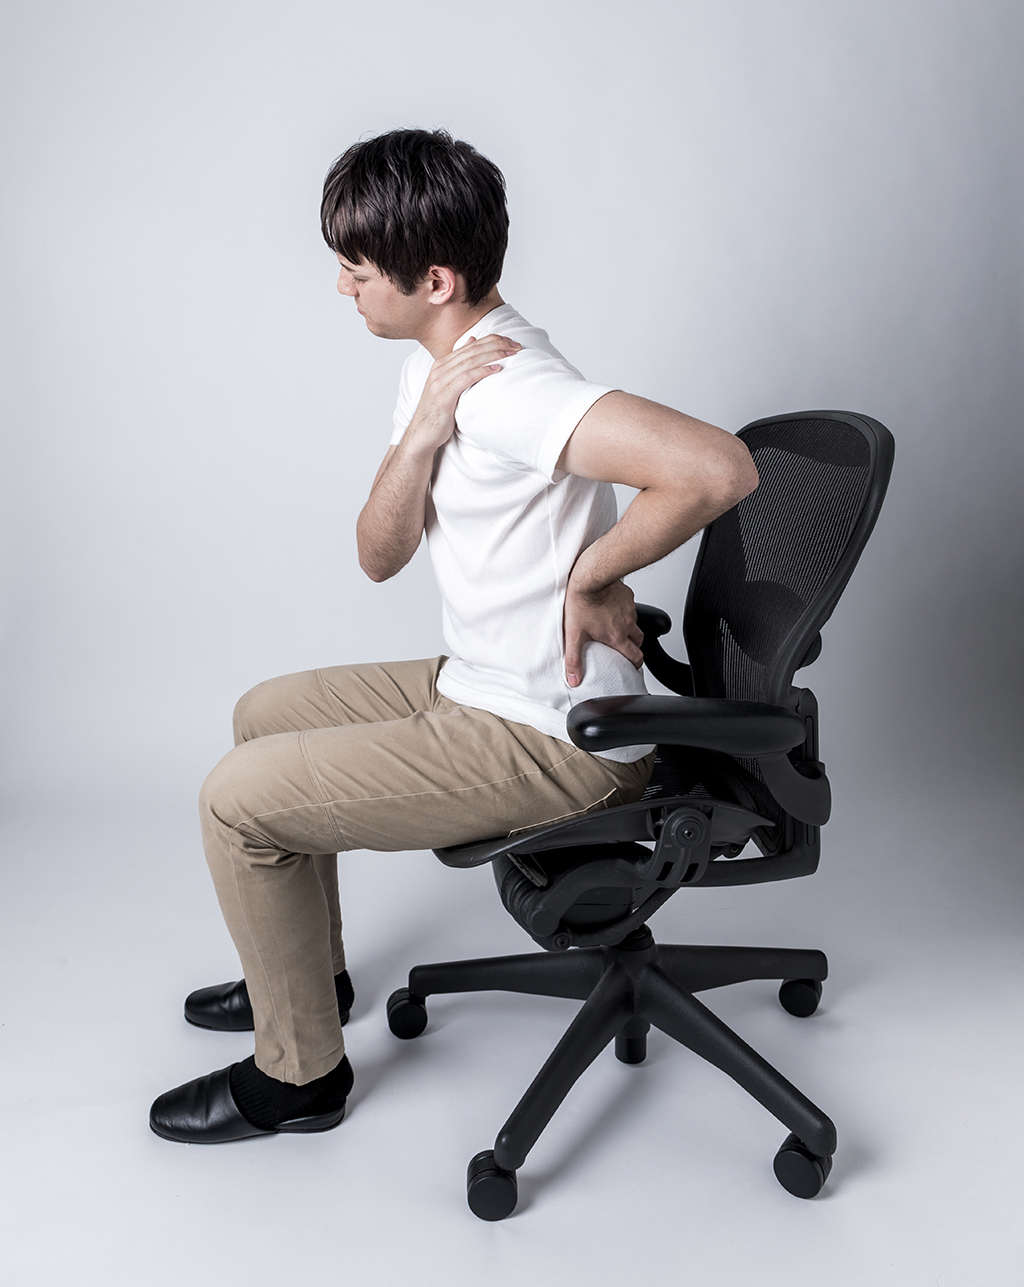 The Risks of Sitting